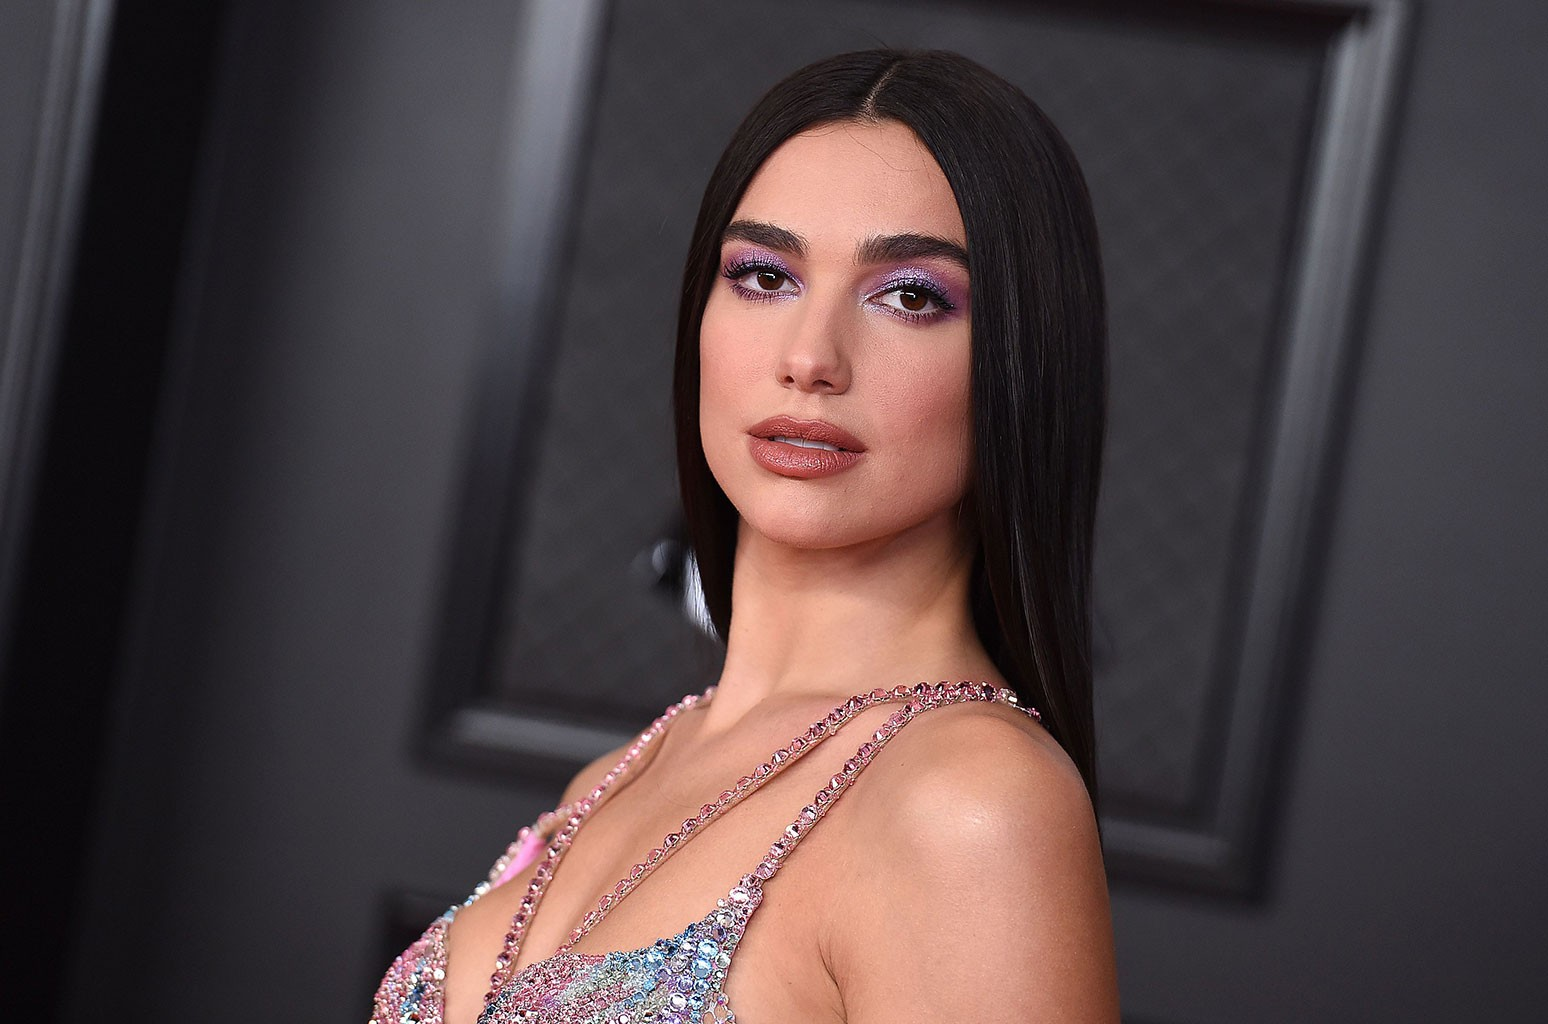 43 Celebrities At 18 Years Old vs. Now Dua Lipa now: